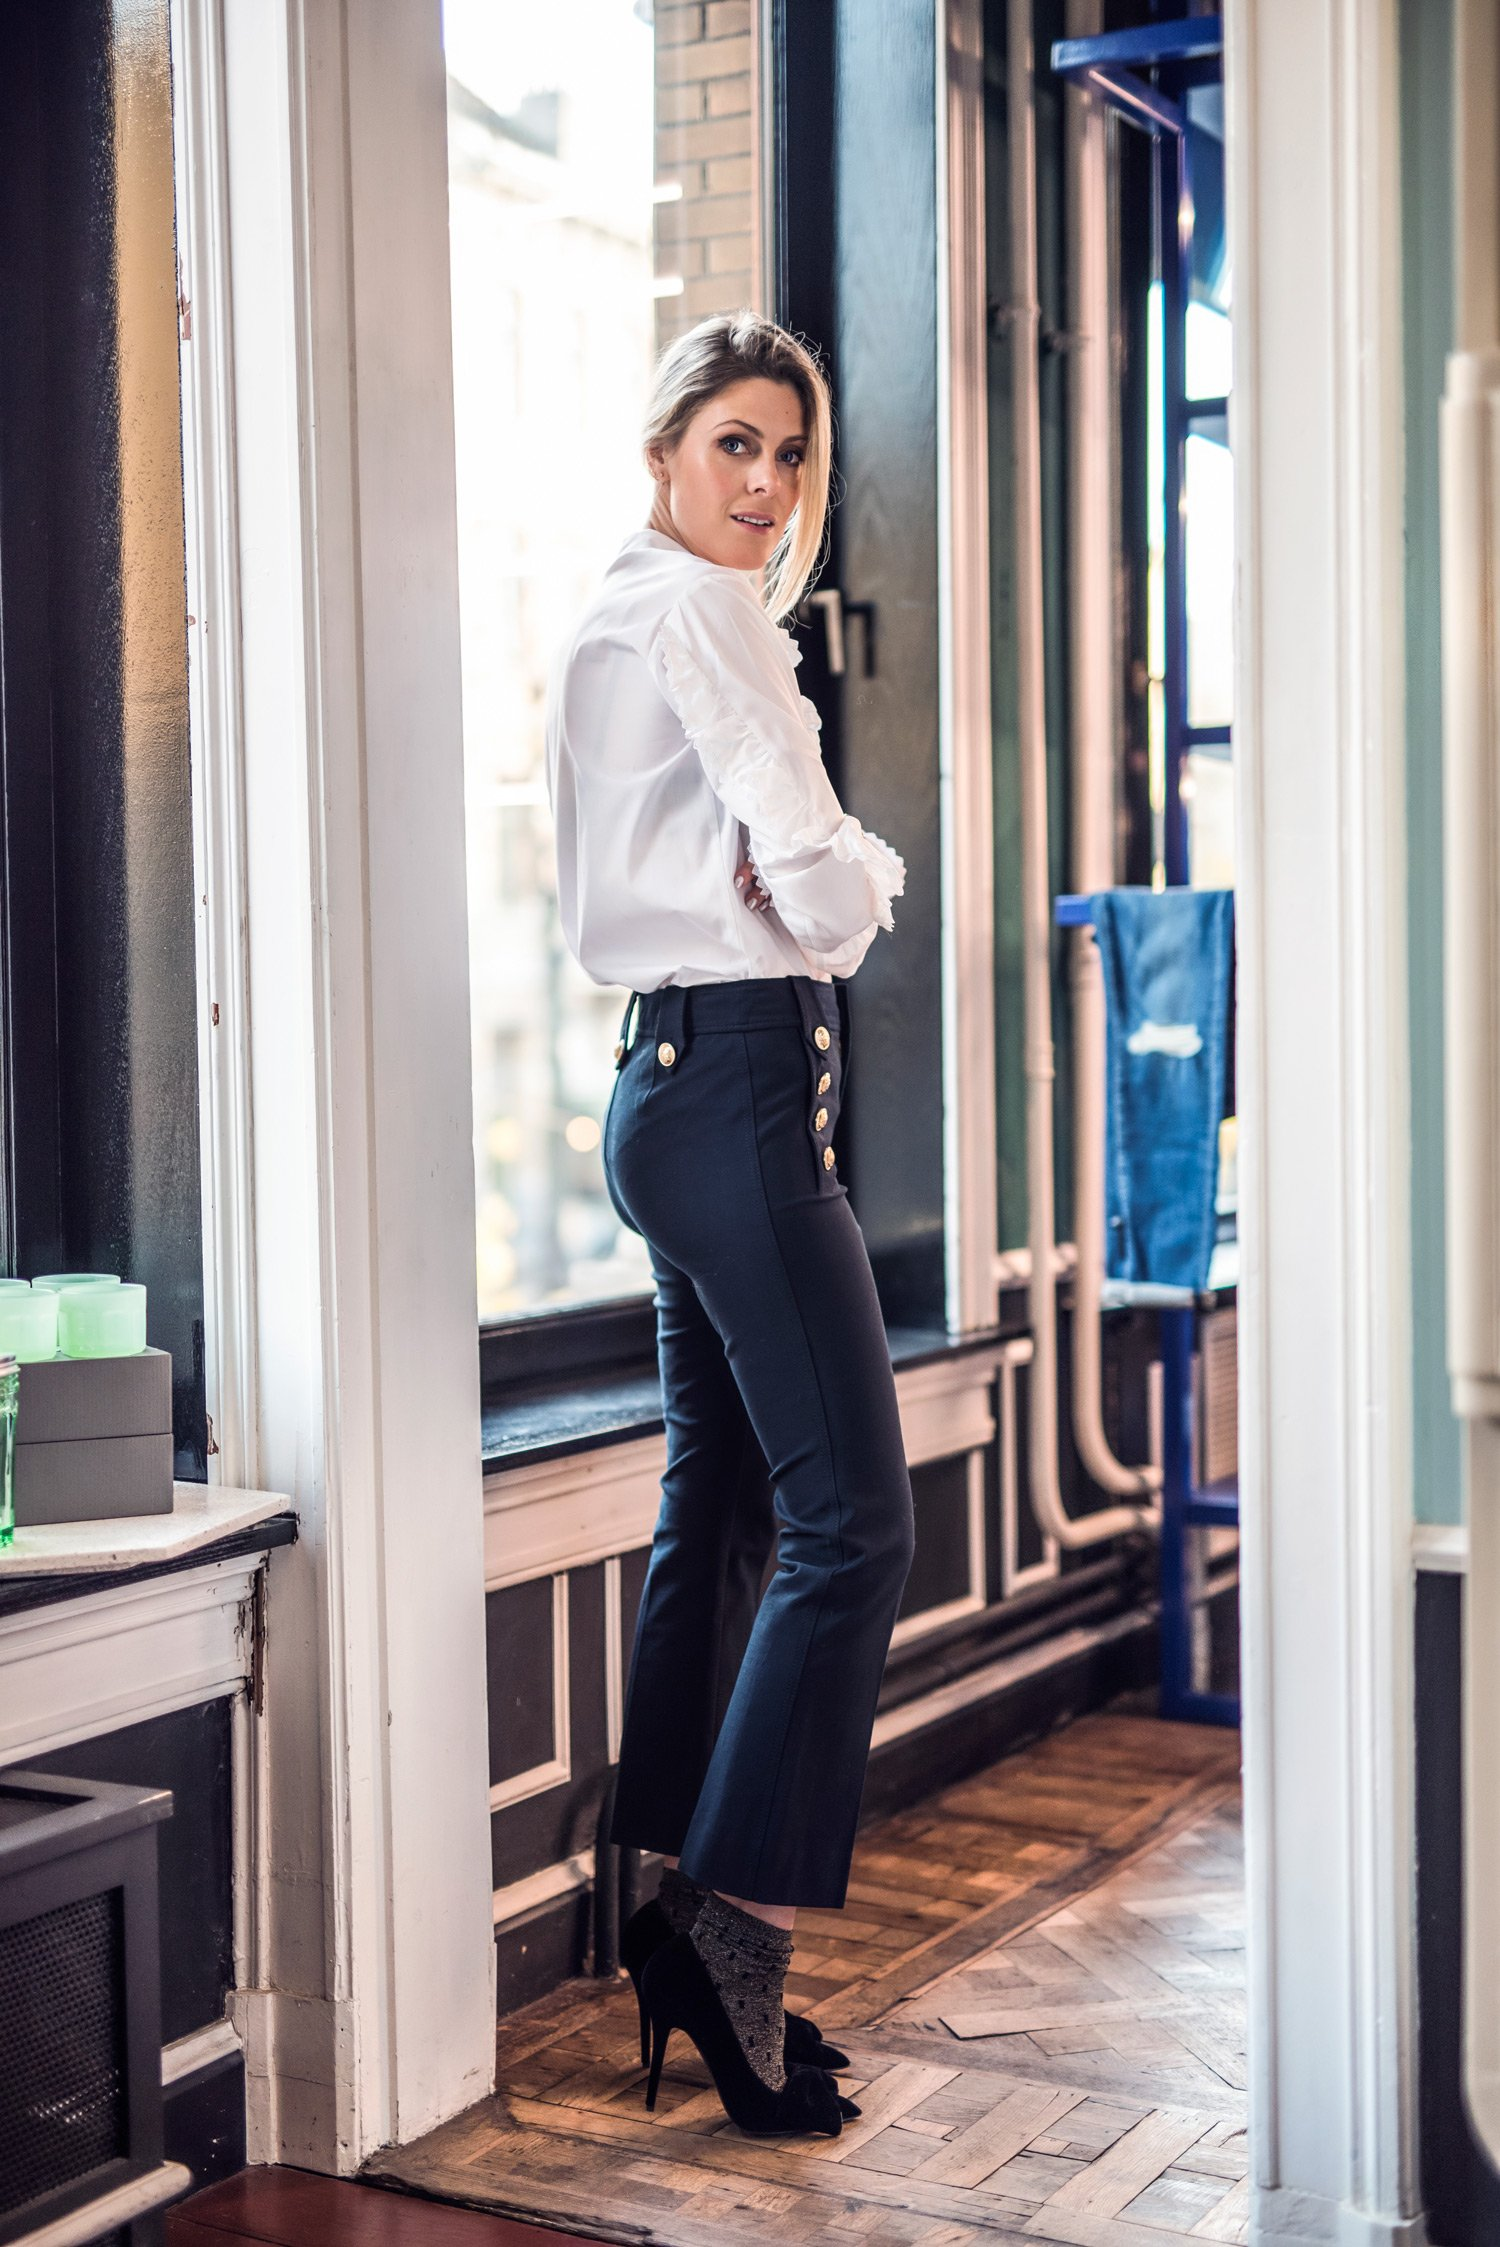 64fbdee2fa7321 There was a time when socks plus pumps plus cropped trousers equalled major  fashion disaster, but we're happy we're passed that. Showing your ankles in  ...